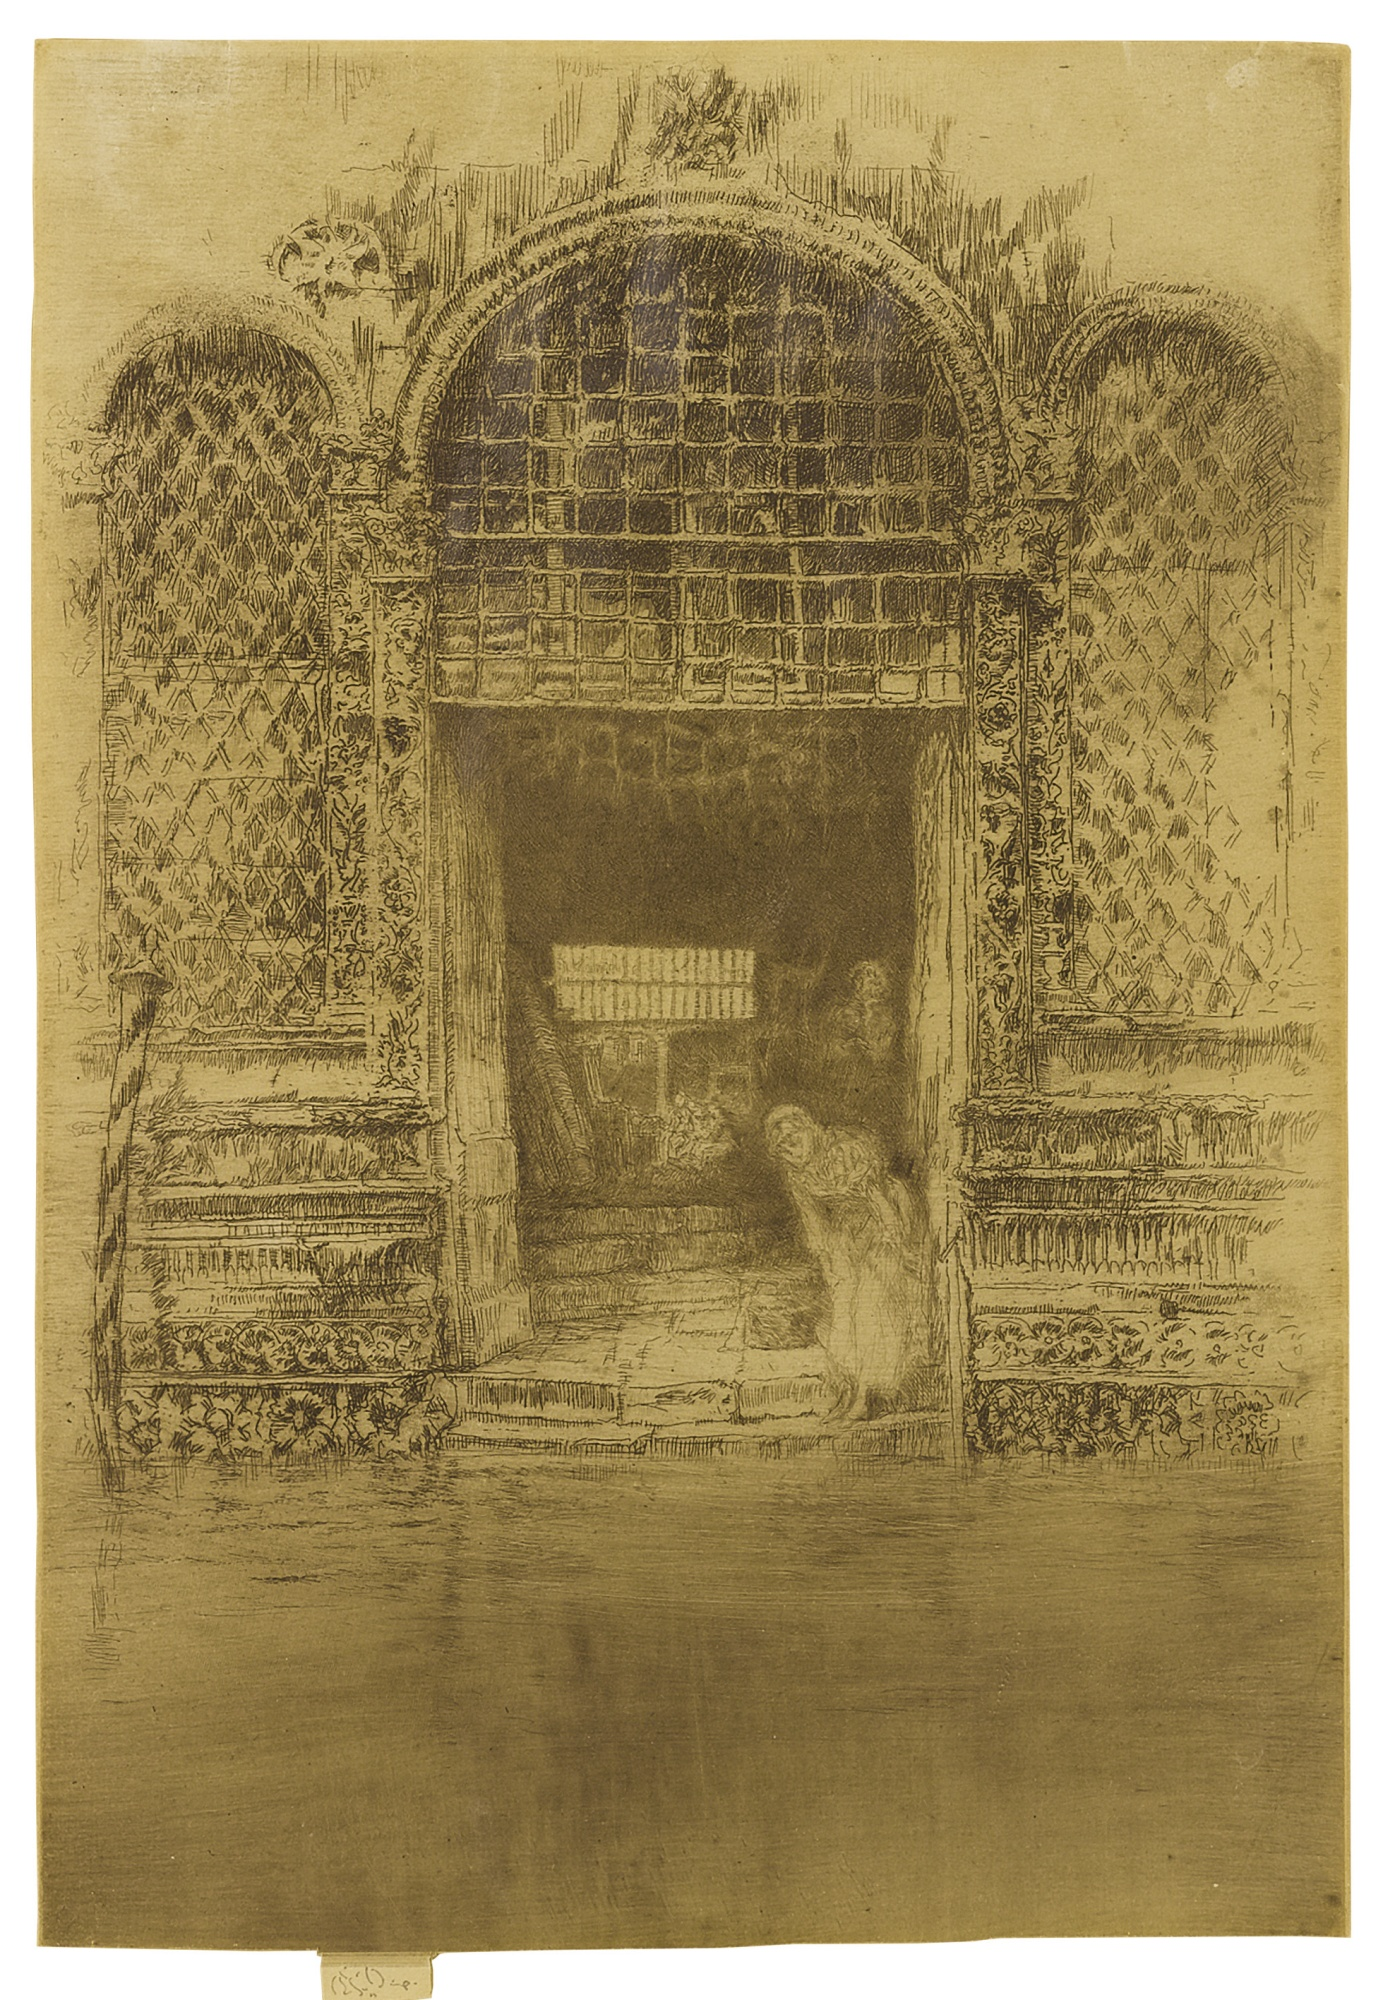 James Mcneill Whistler - The Doorway (Kennedy 188; Glasgow 193)-1880